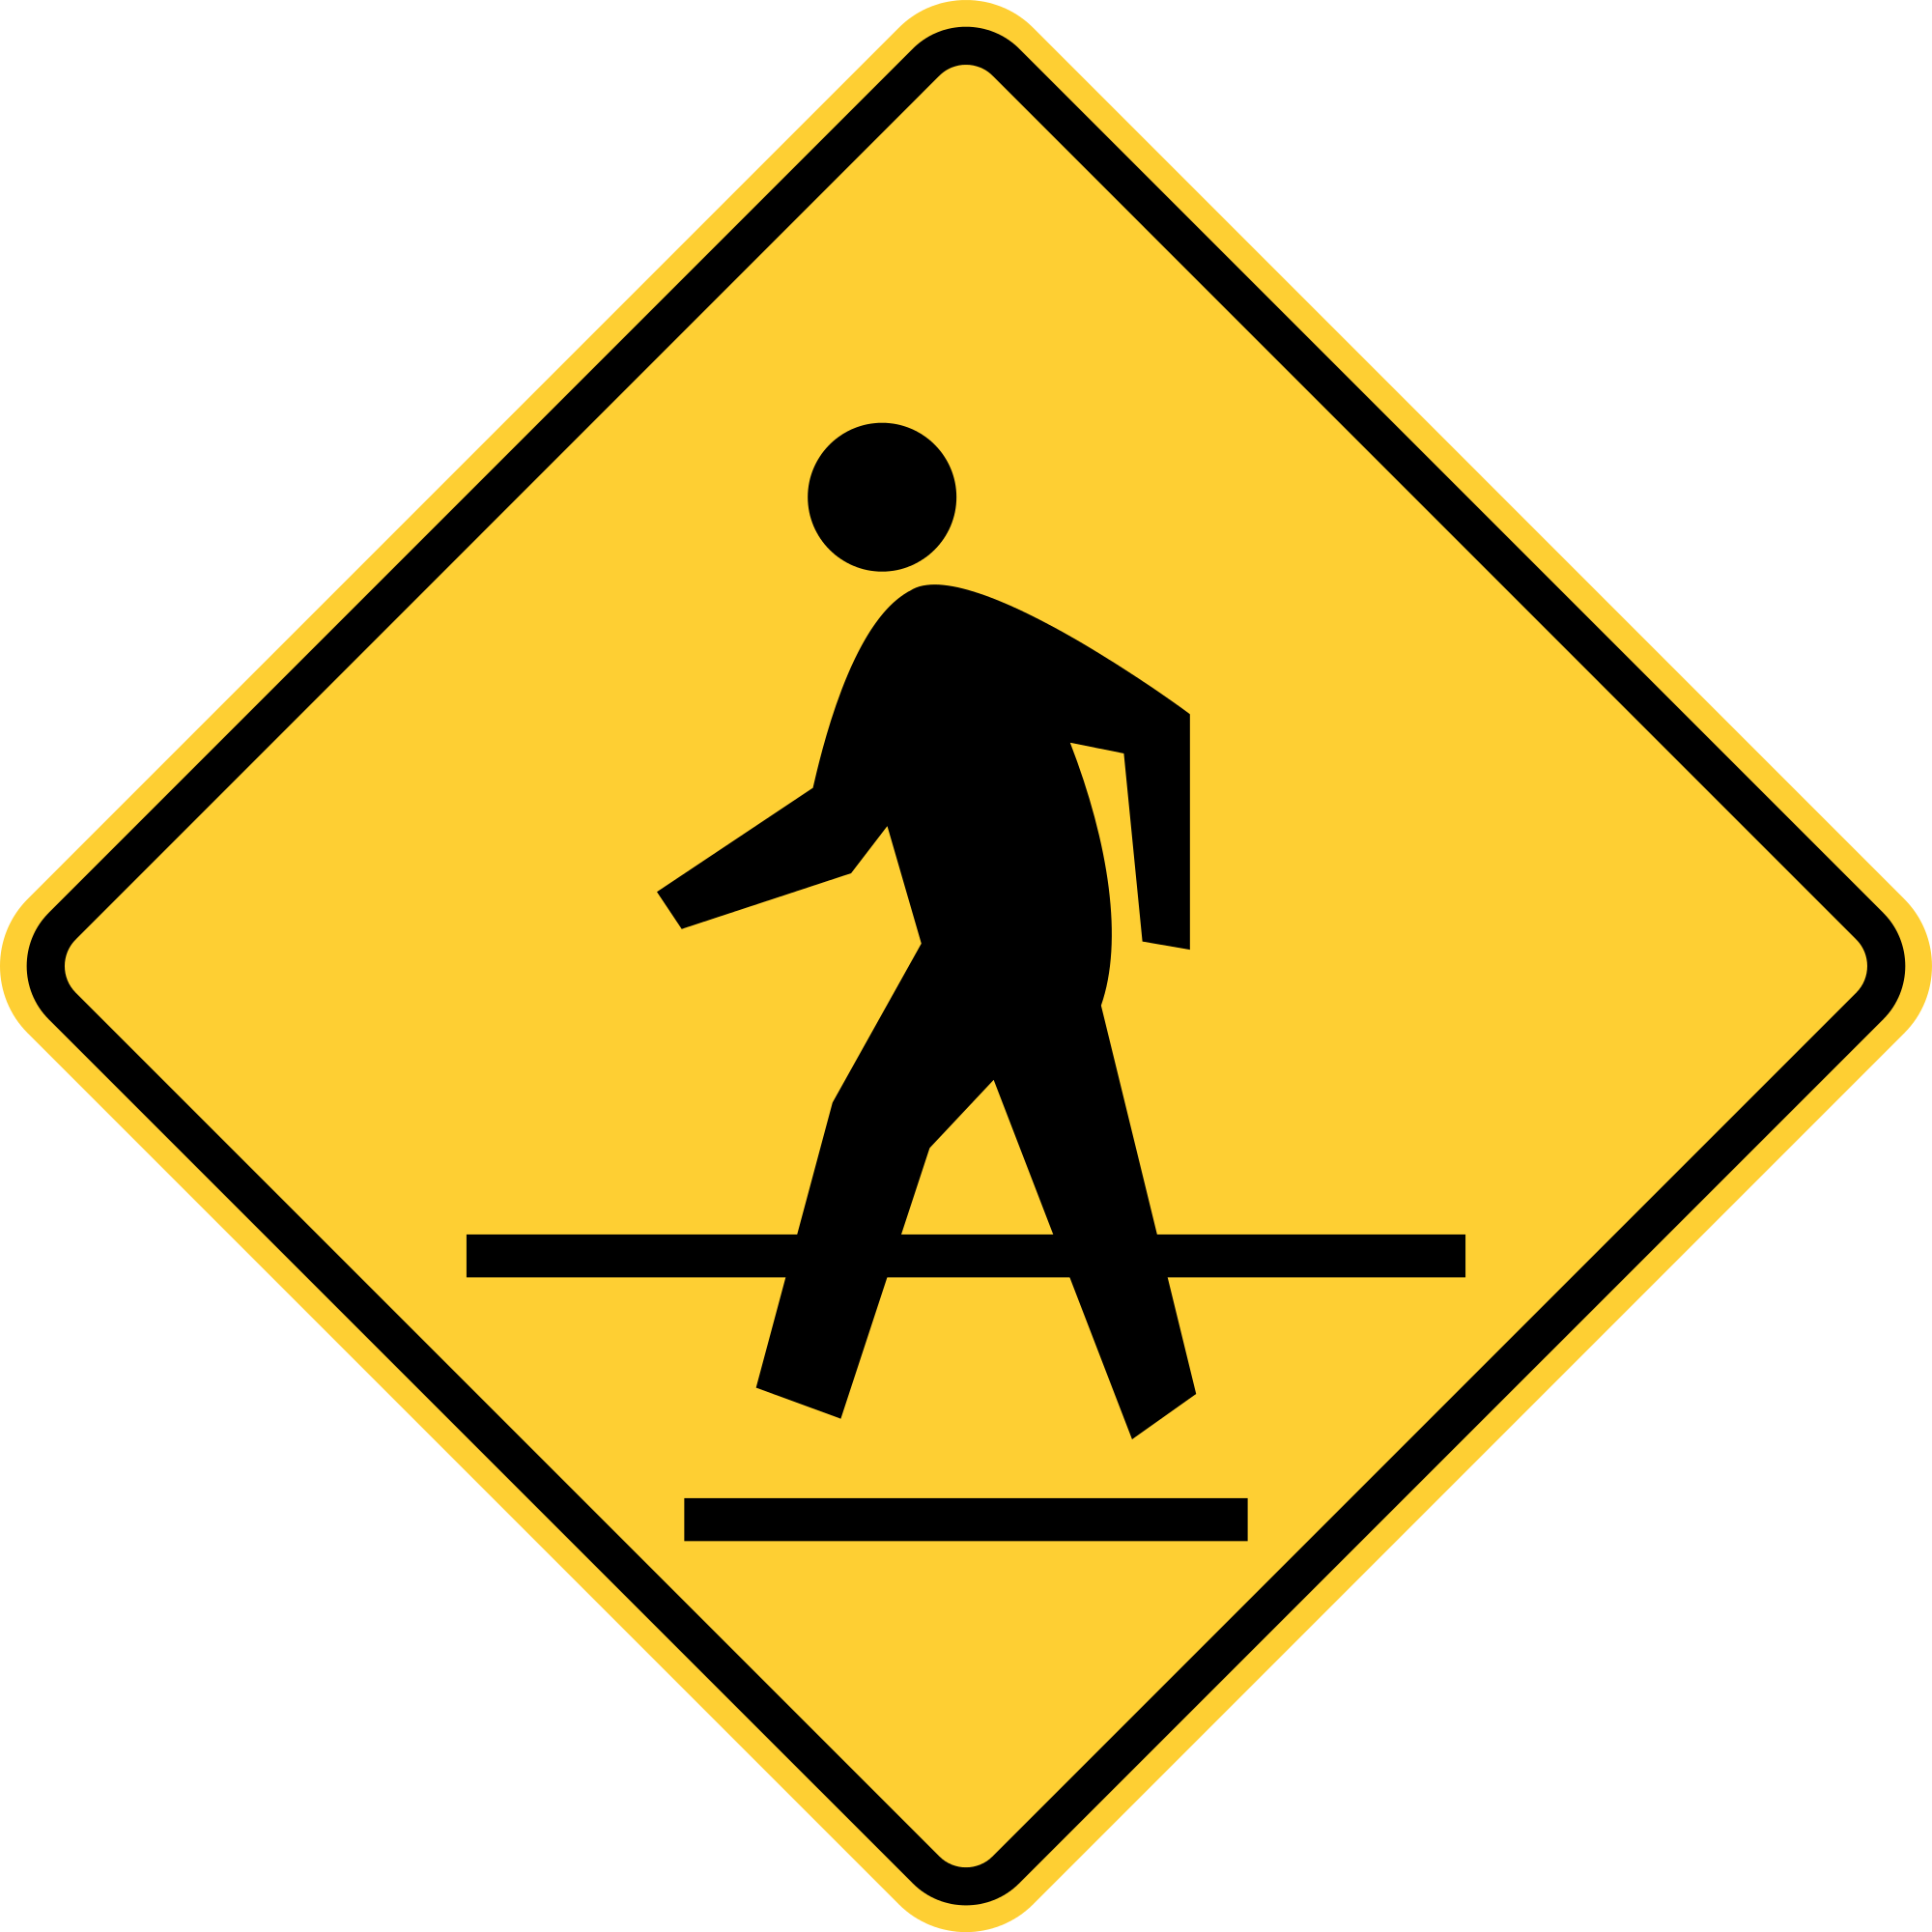 Law clipart law public safety. Crosswalk laws department of